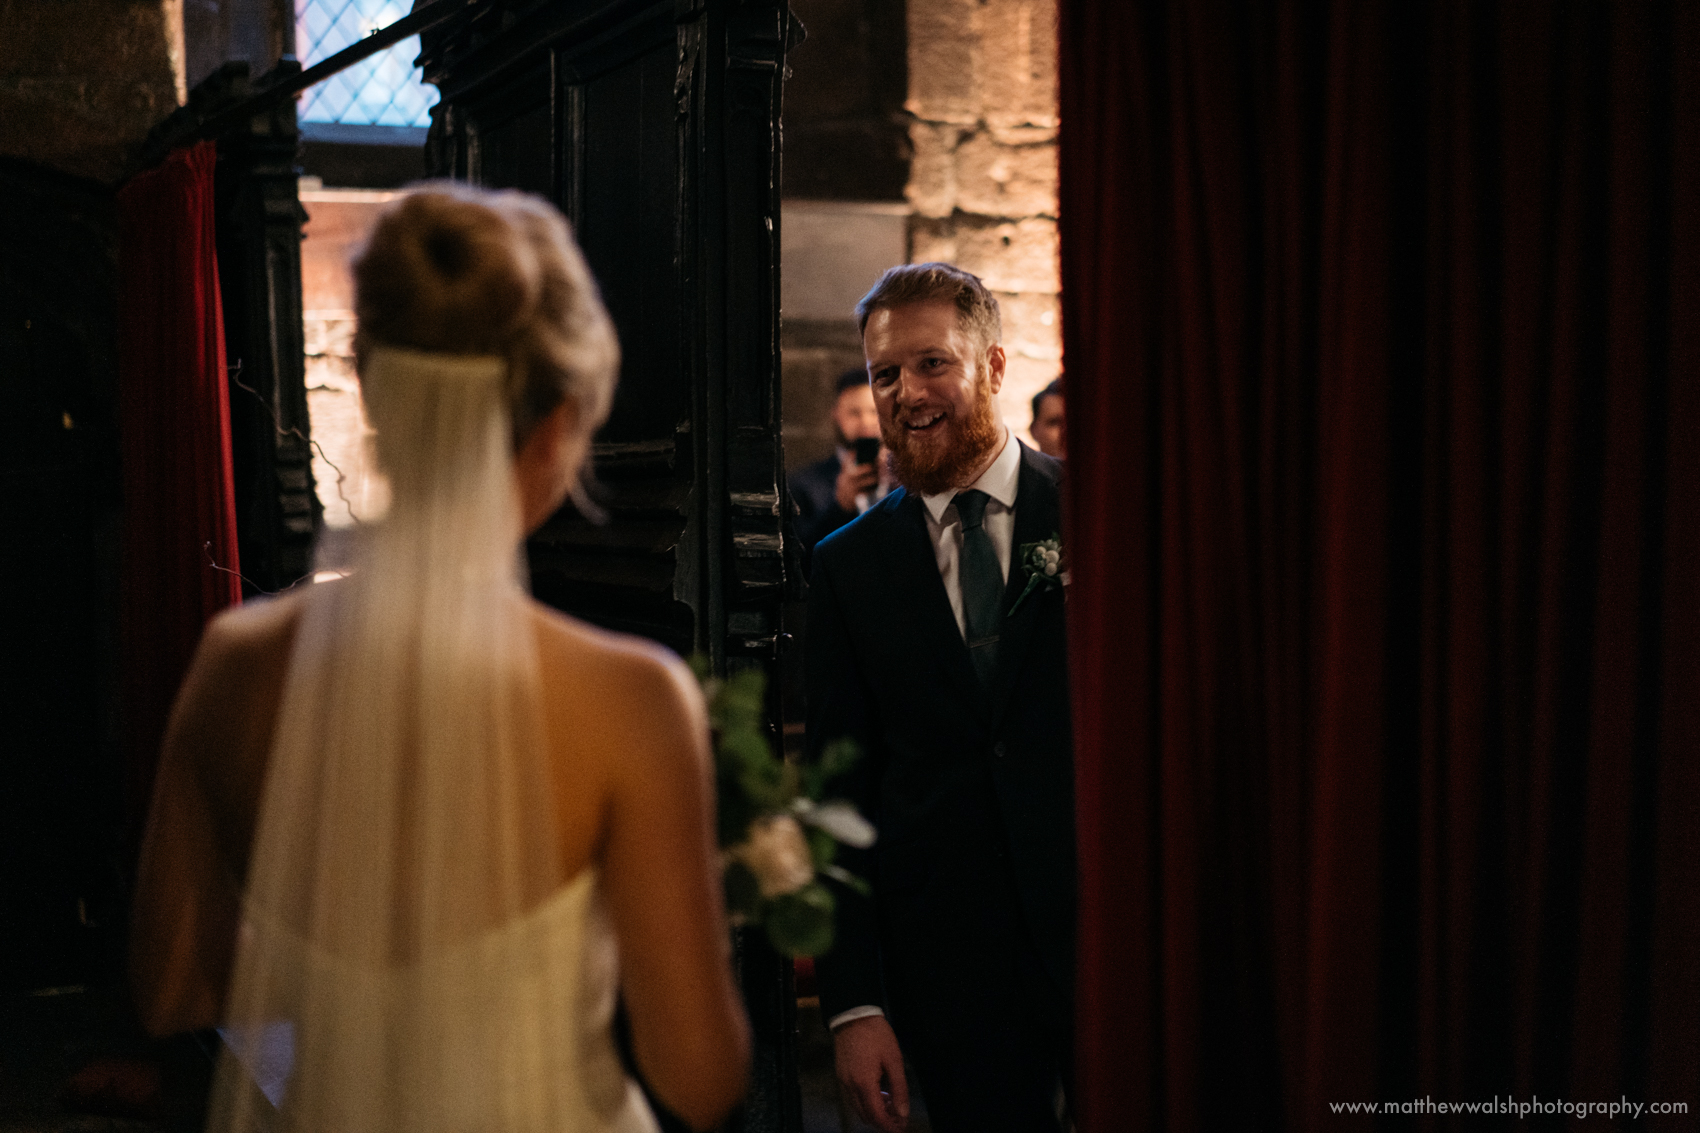 The bride and groom seeing each other for the first time